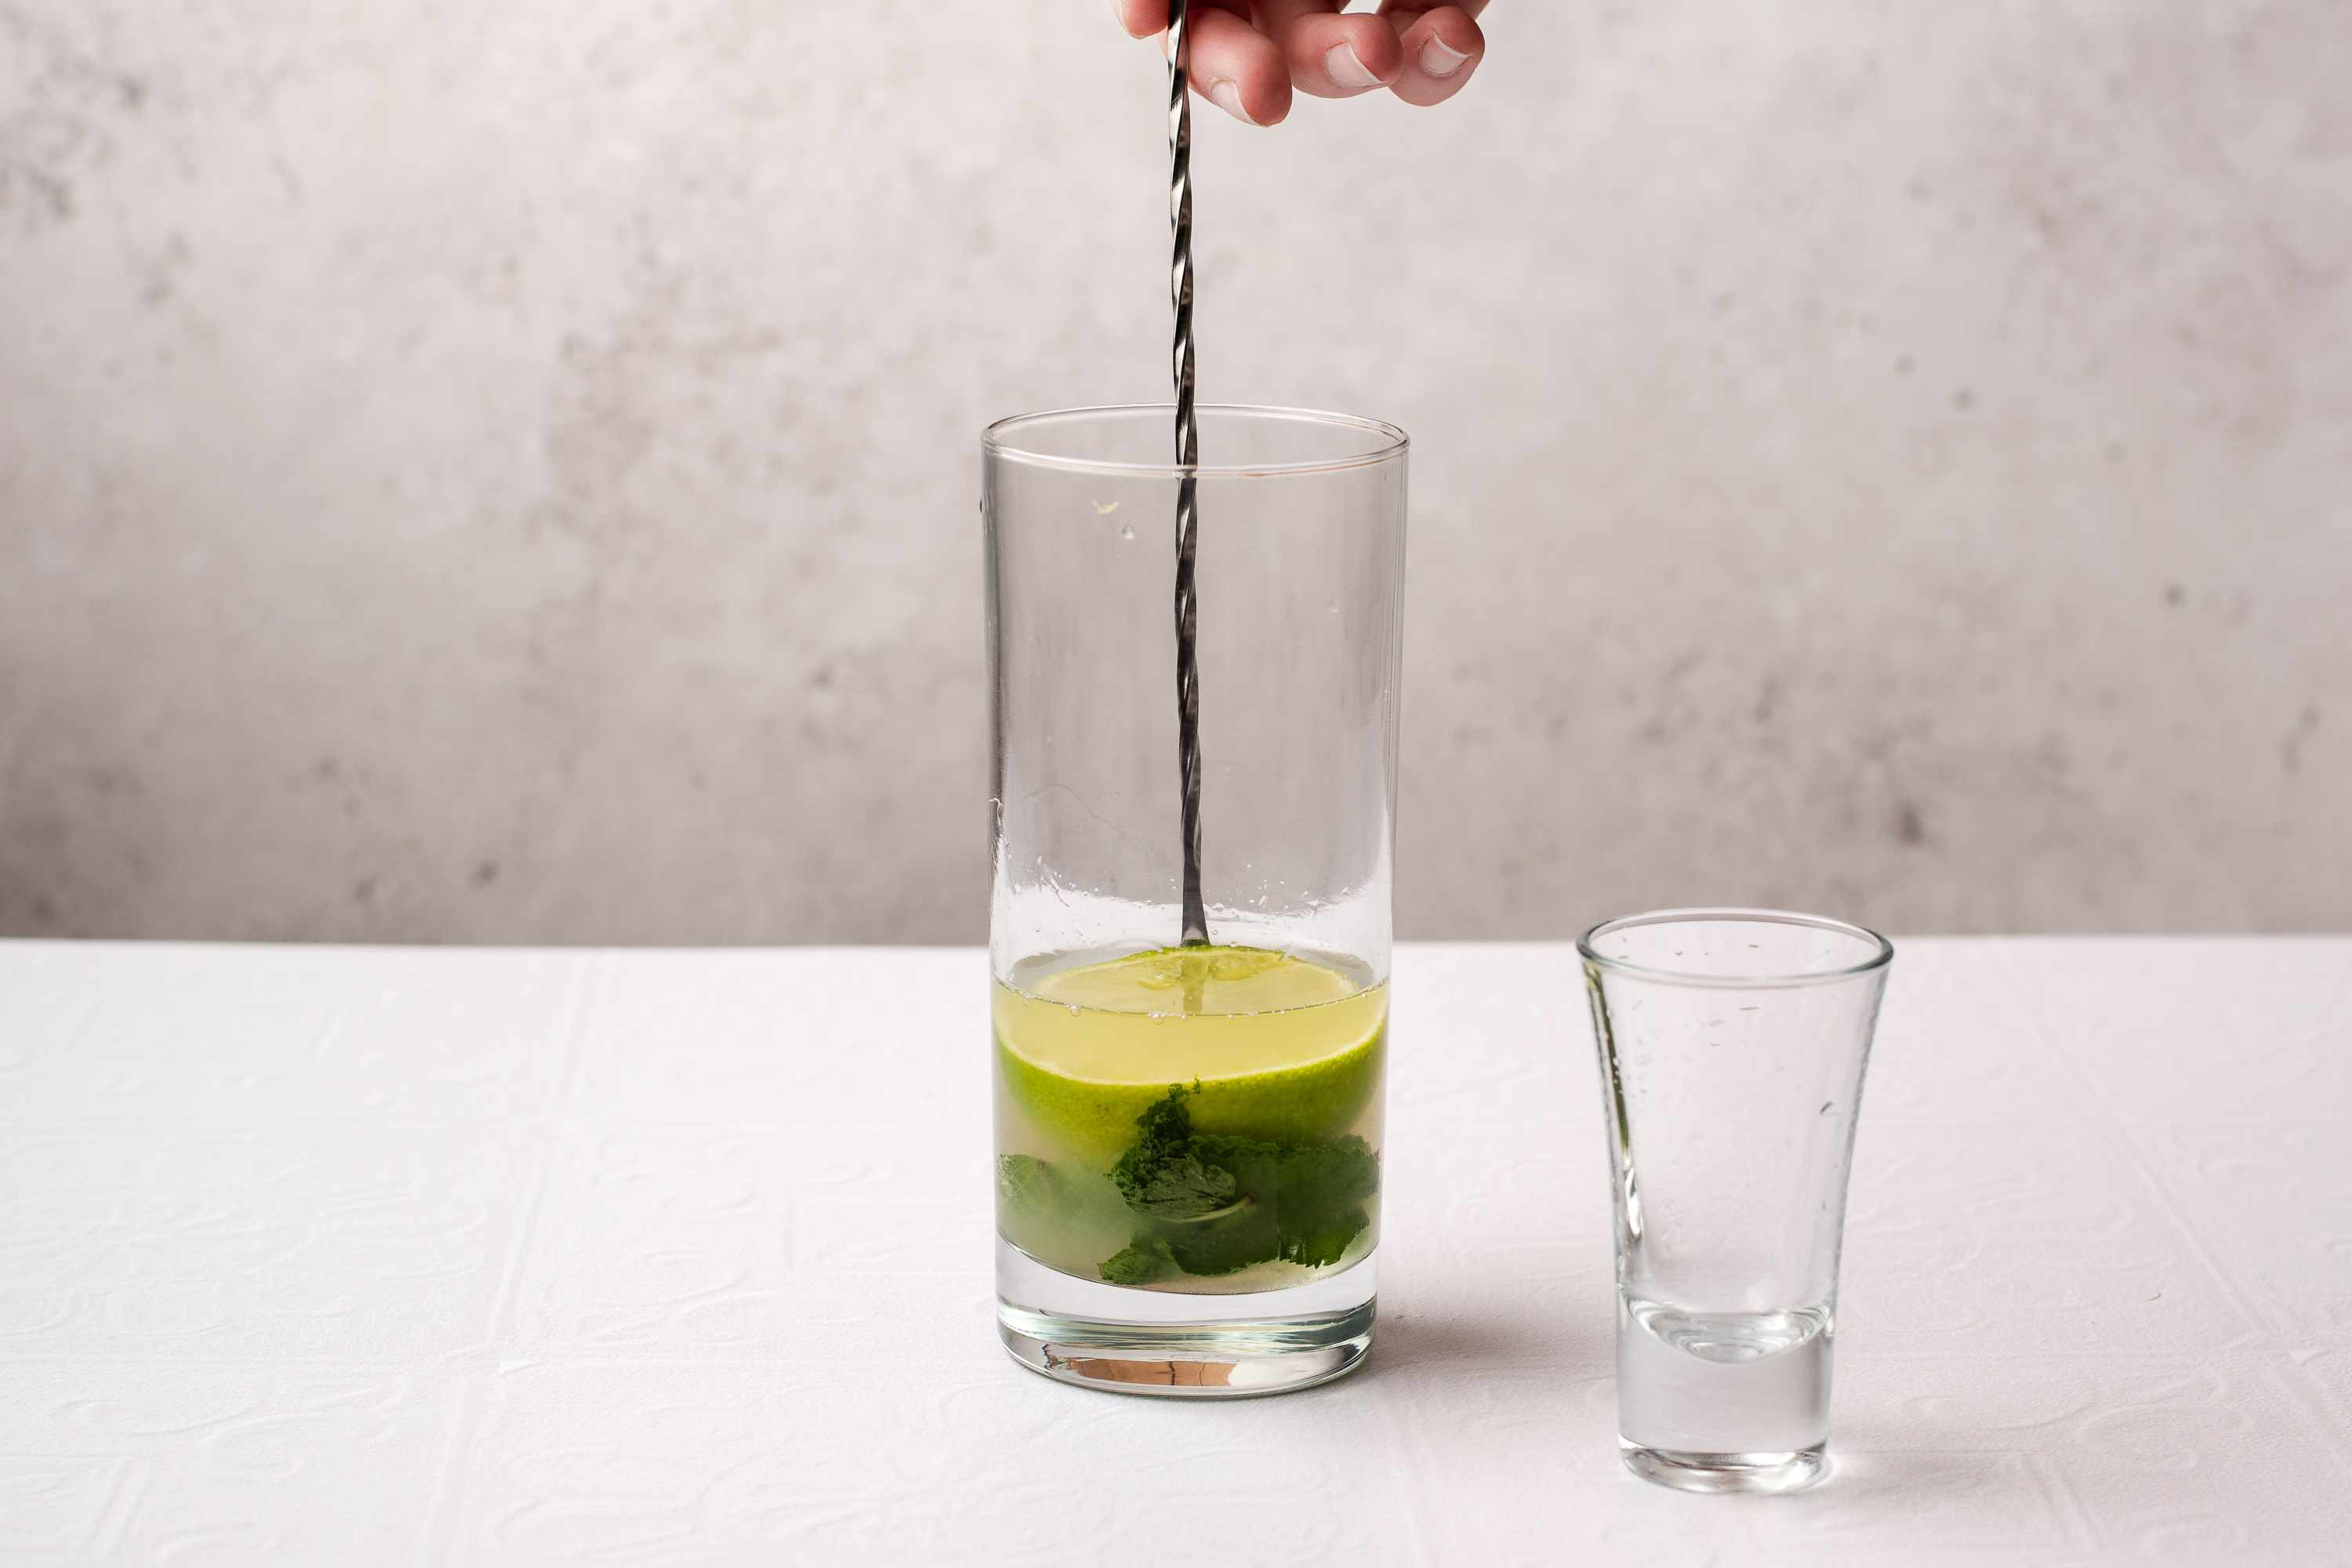 add rum to the mint mixture in the glass